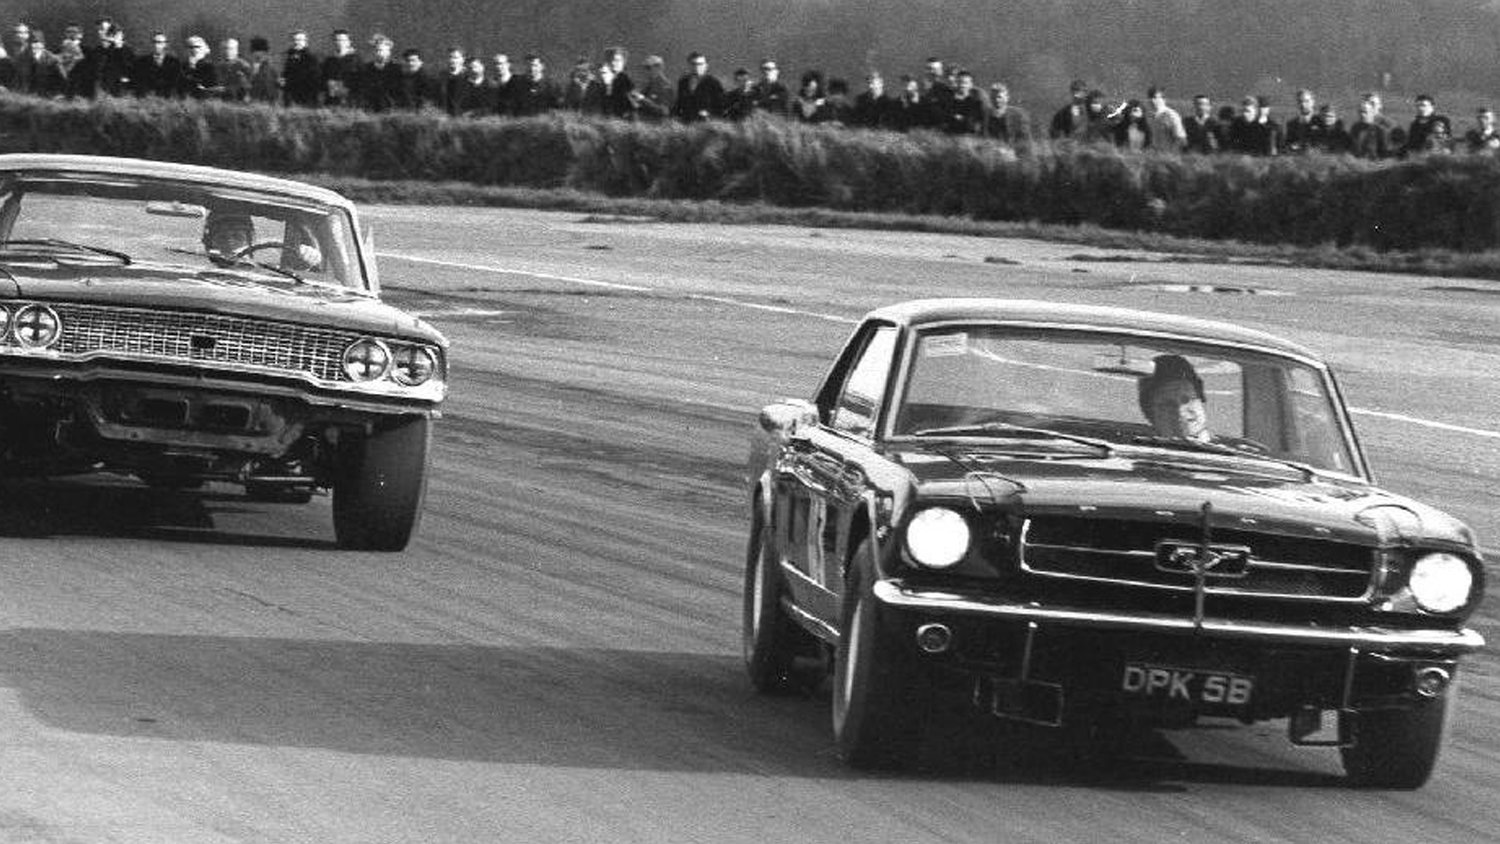 Battle Yanks: The sole surviving Tour de France Mustang, seen here ahead of a '63 Ford Galaxie 427, which did not finish the race.